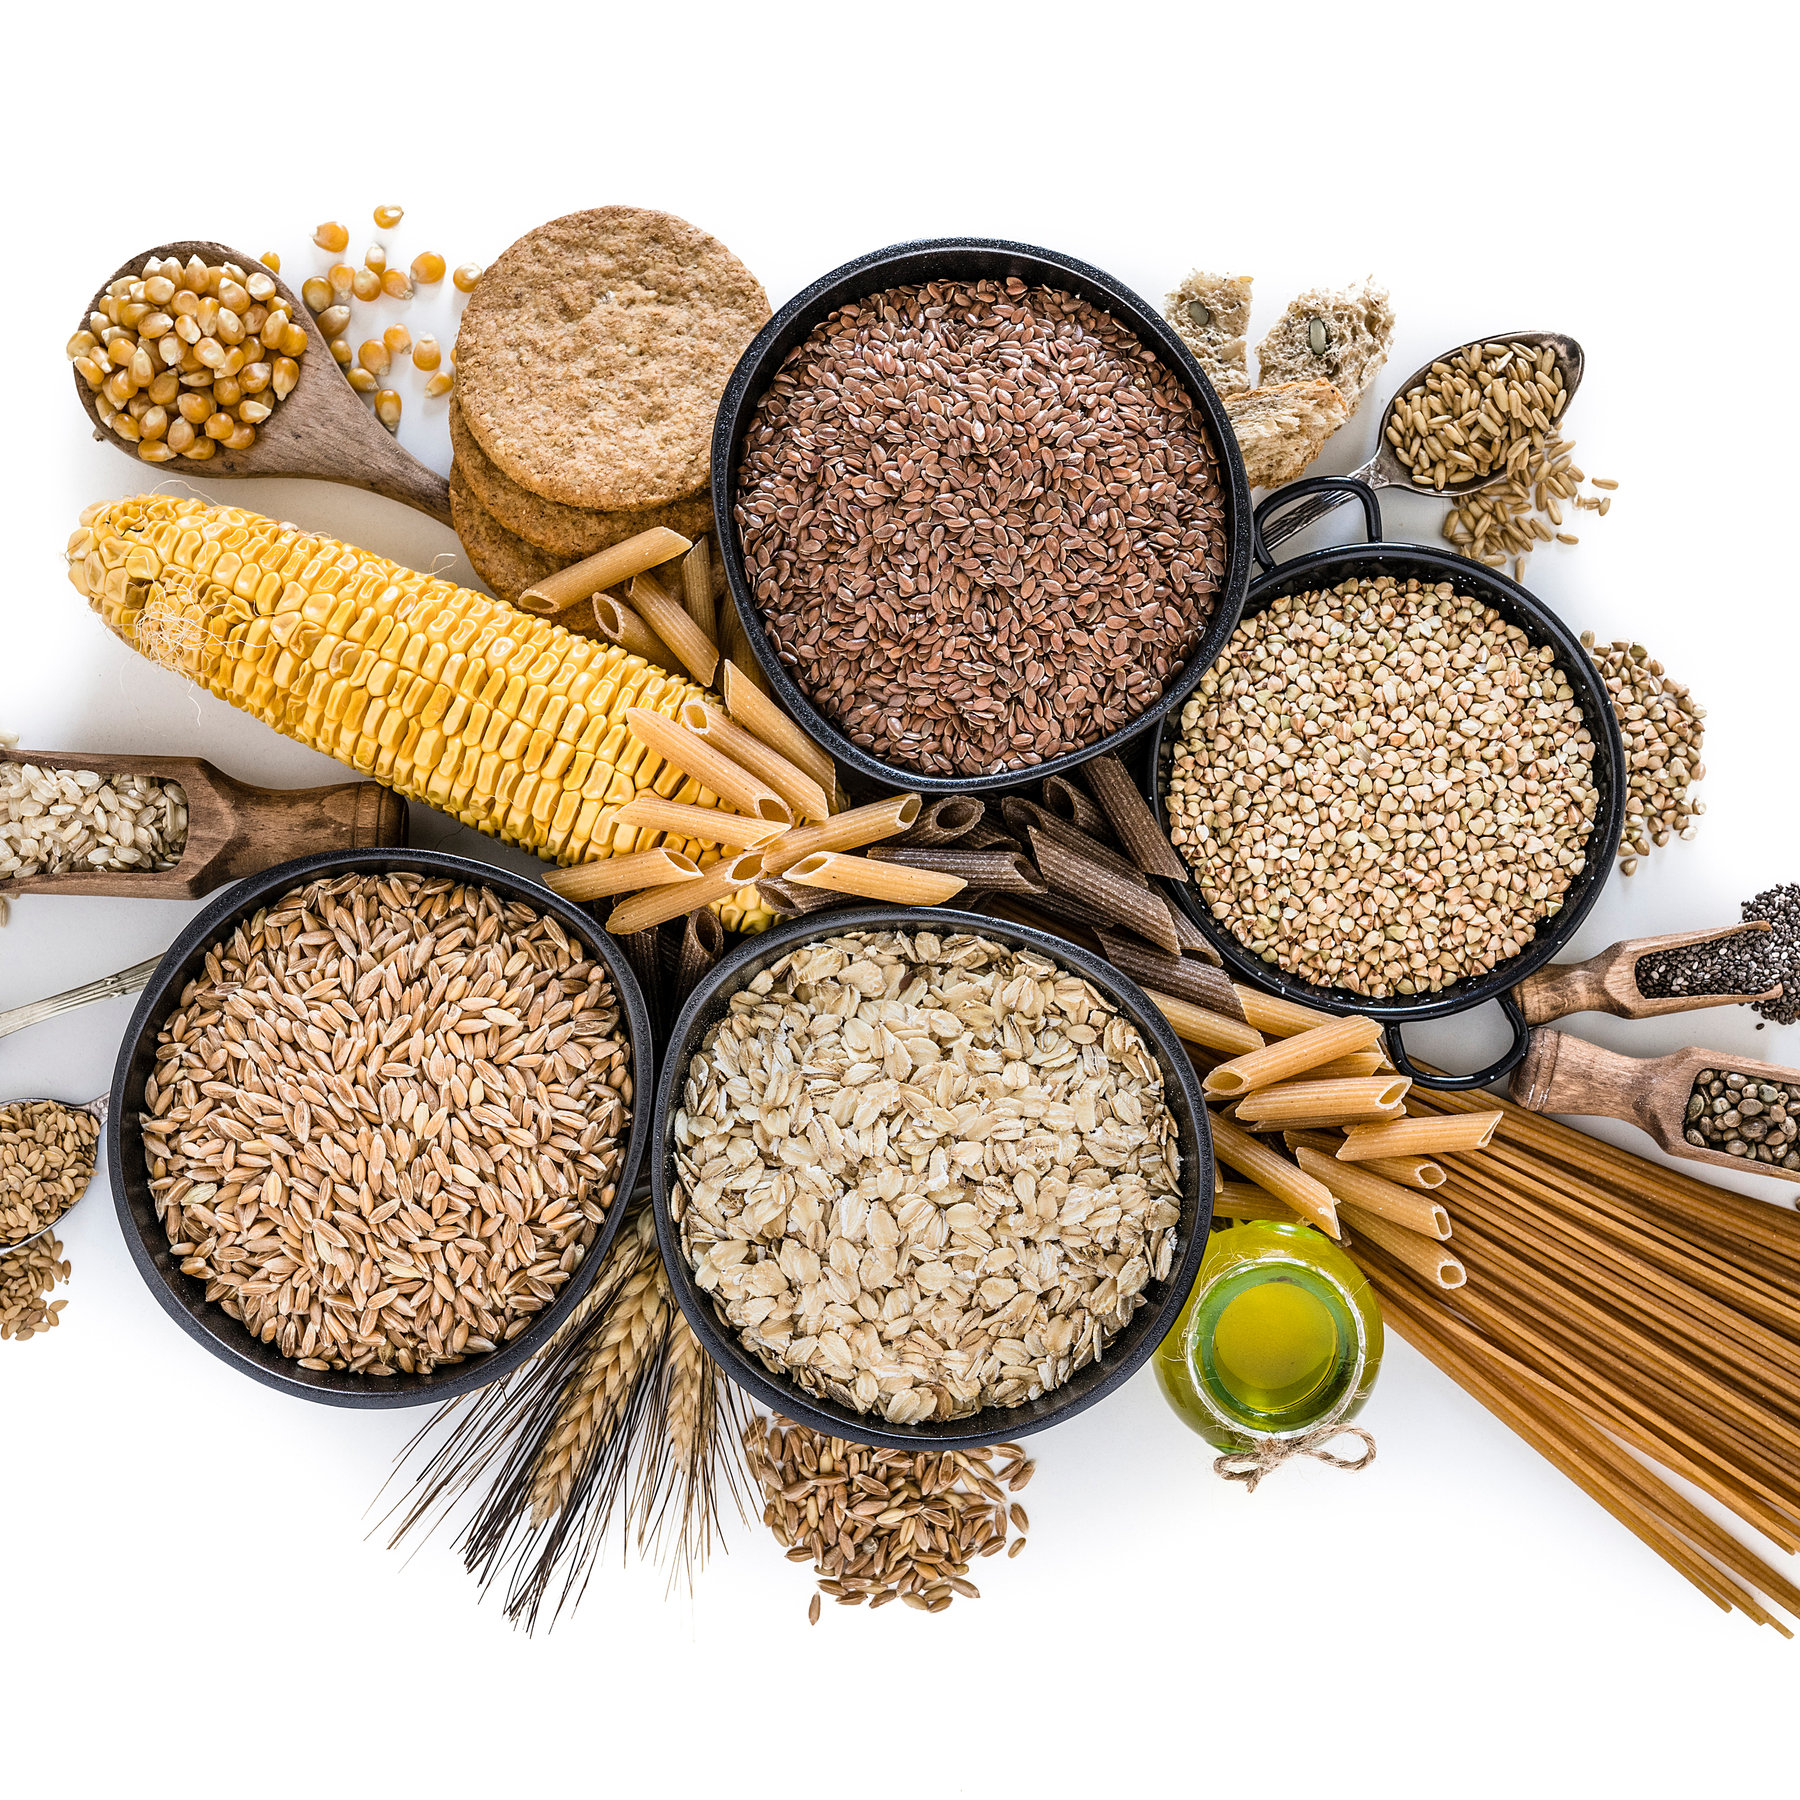 What Should I Look for When Buying Whole Grains? - The New York Times